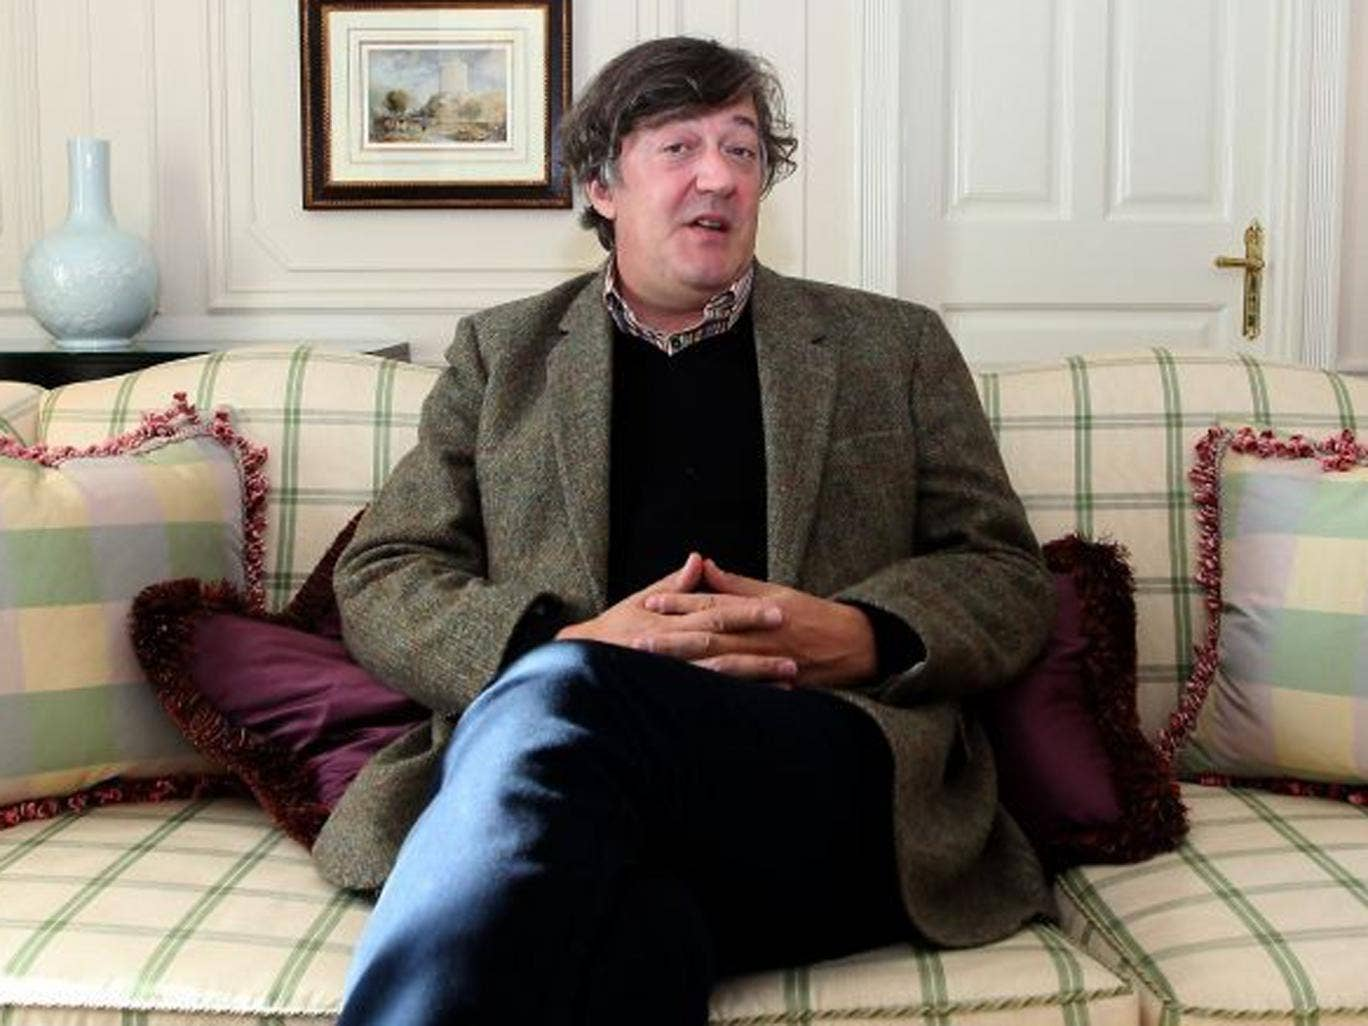 Actor, author, presenter and director Stephen Fry was diagnosed with a bipolar disorder